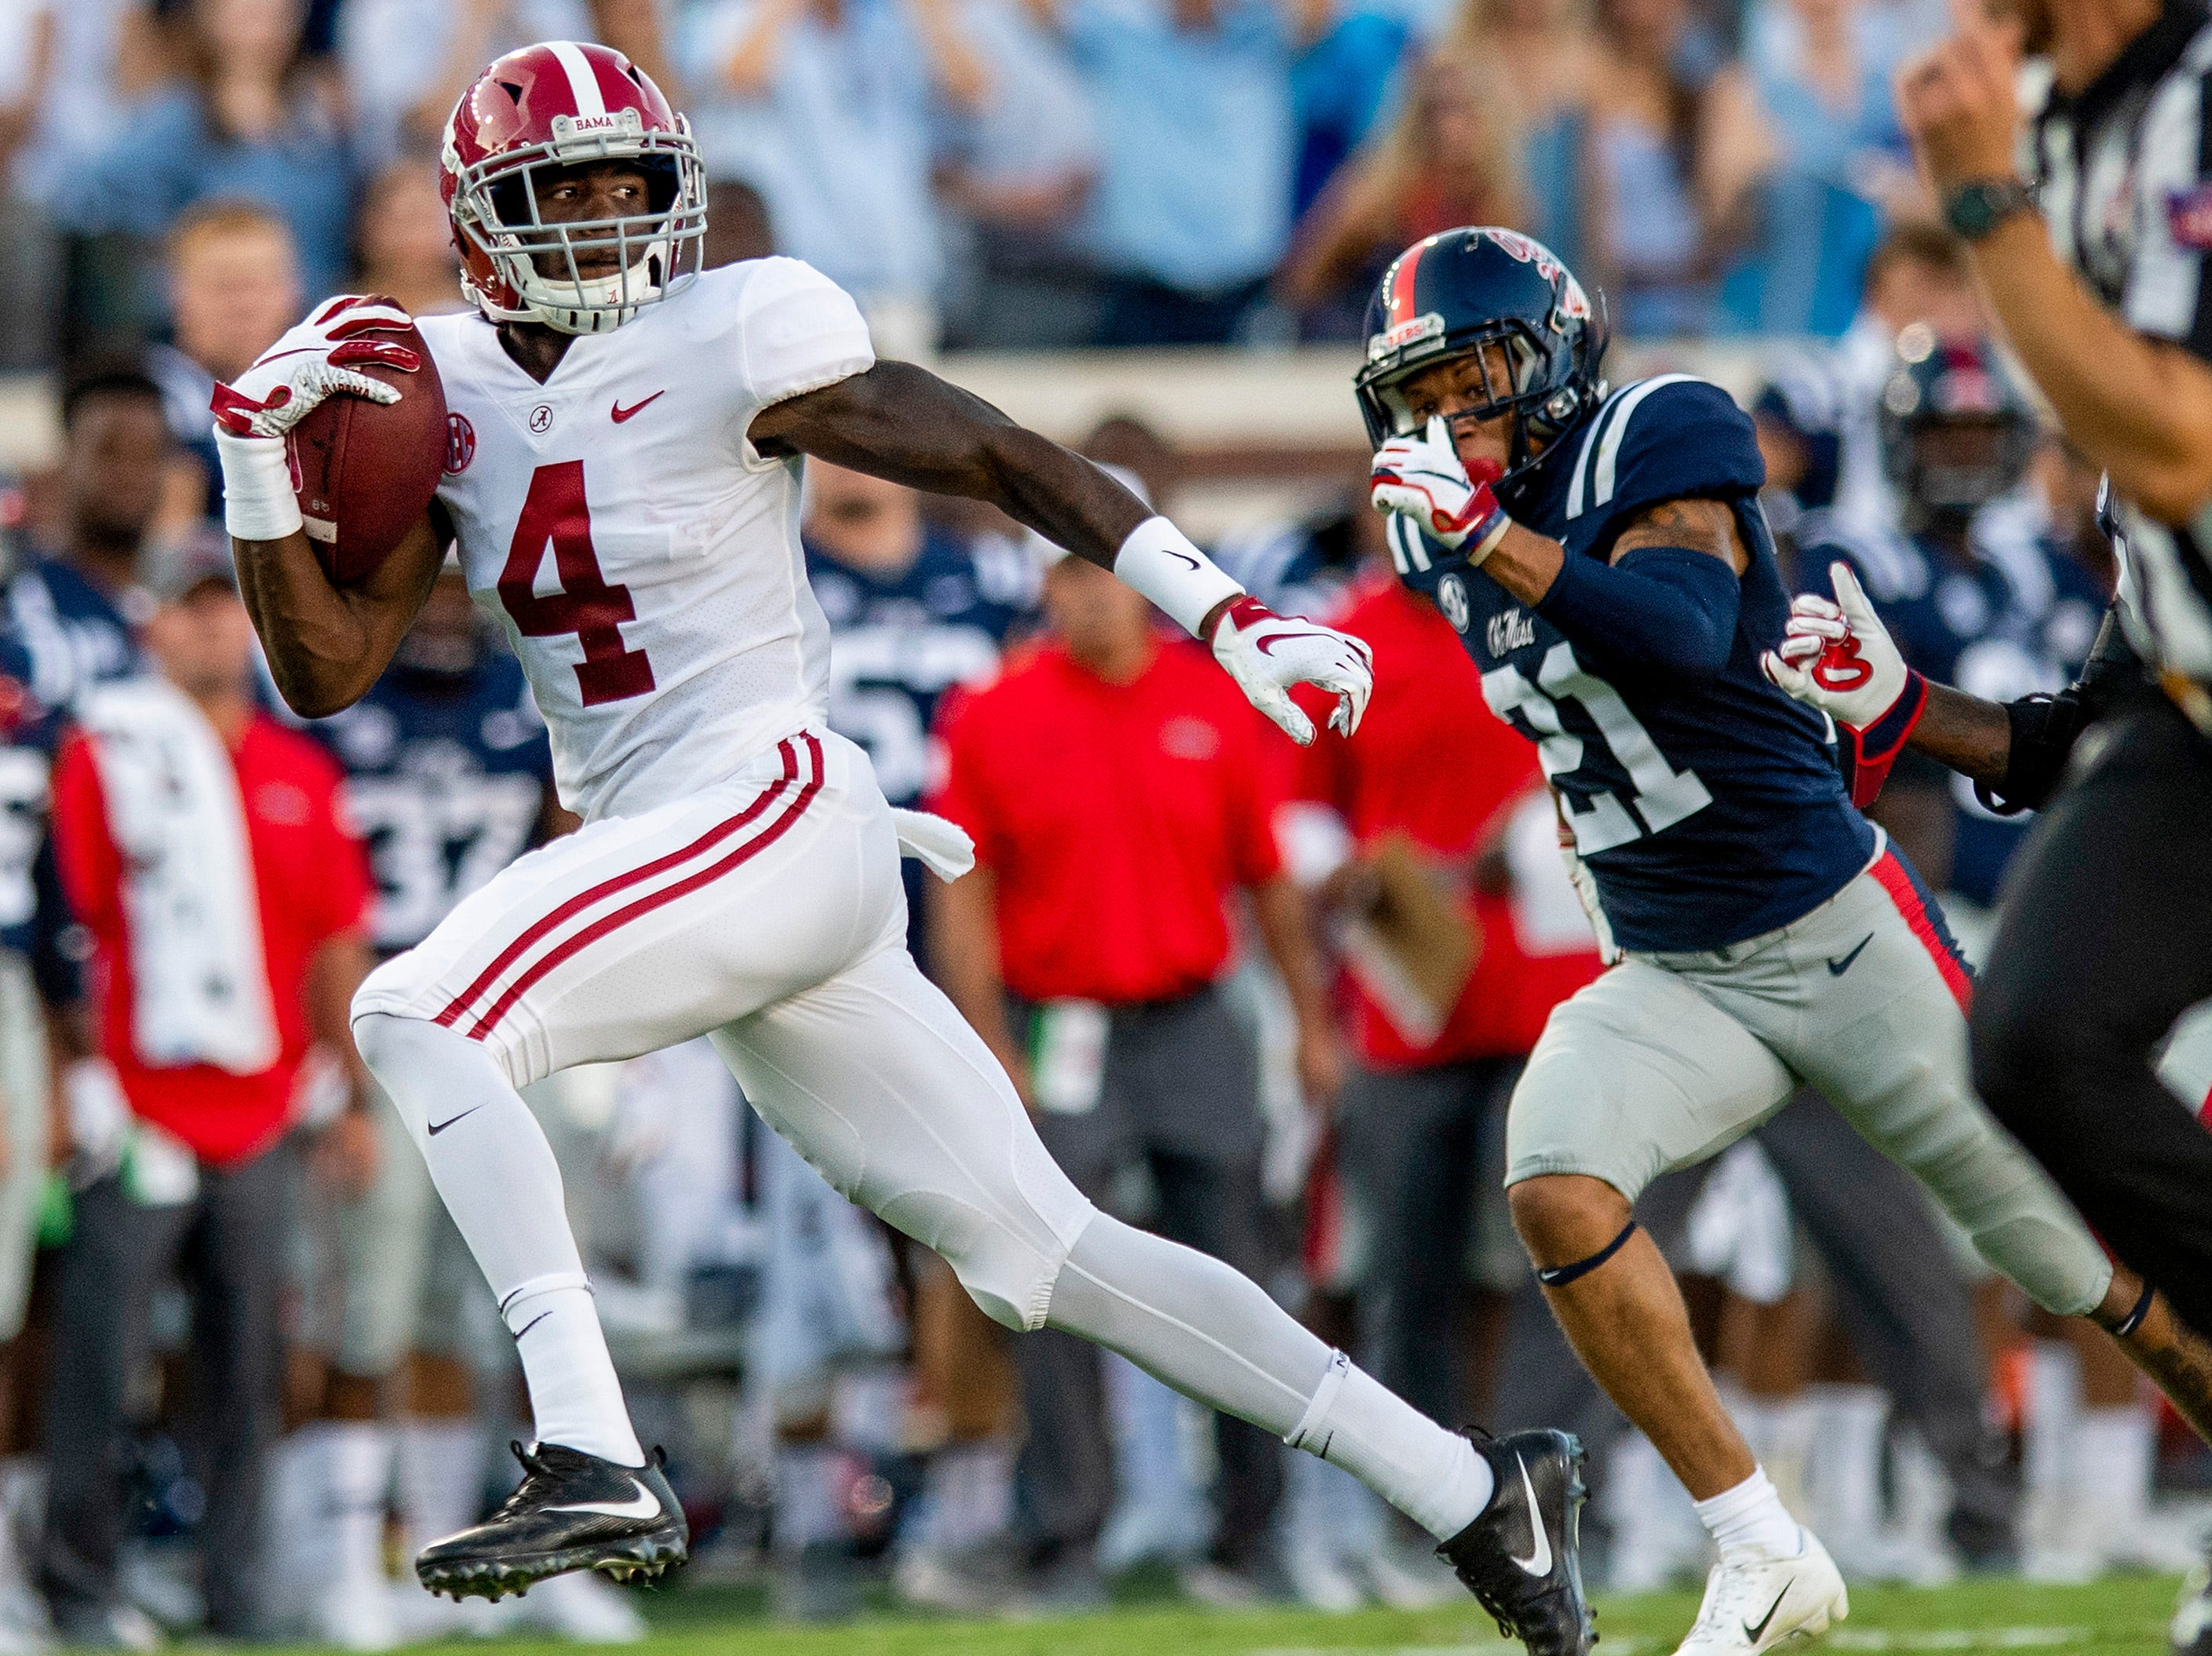 Alabama wide receiver Jerry Jeudy (4) breaks free for a touchdown against Ole Miss In first half action in Oxford, Ms., on Saturday September 15, 2018.